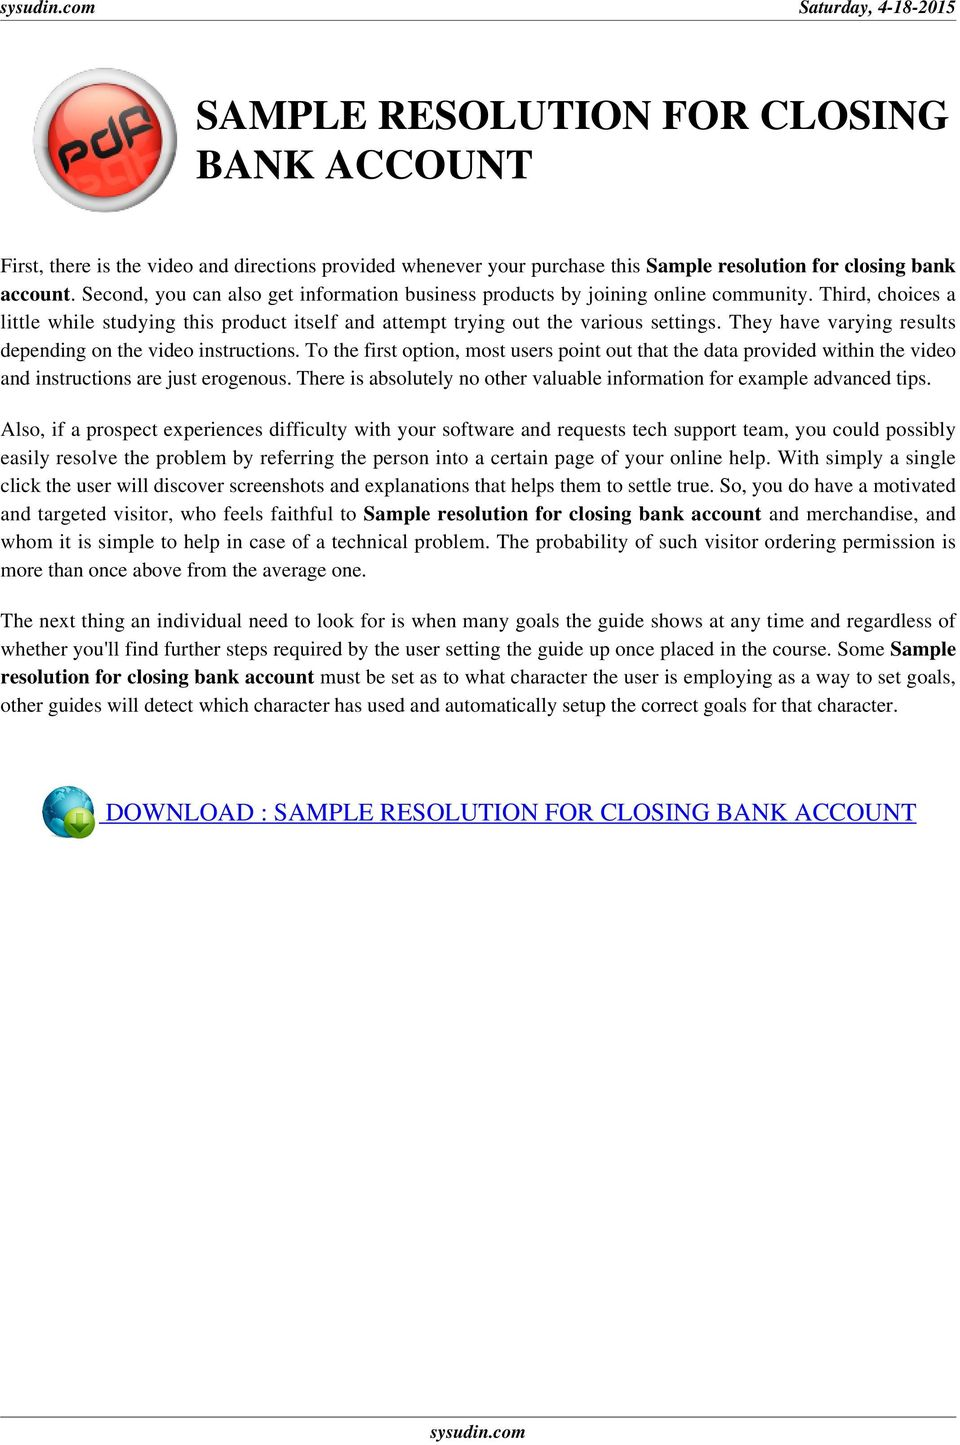 sample resolution for closing bank account : The User's